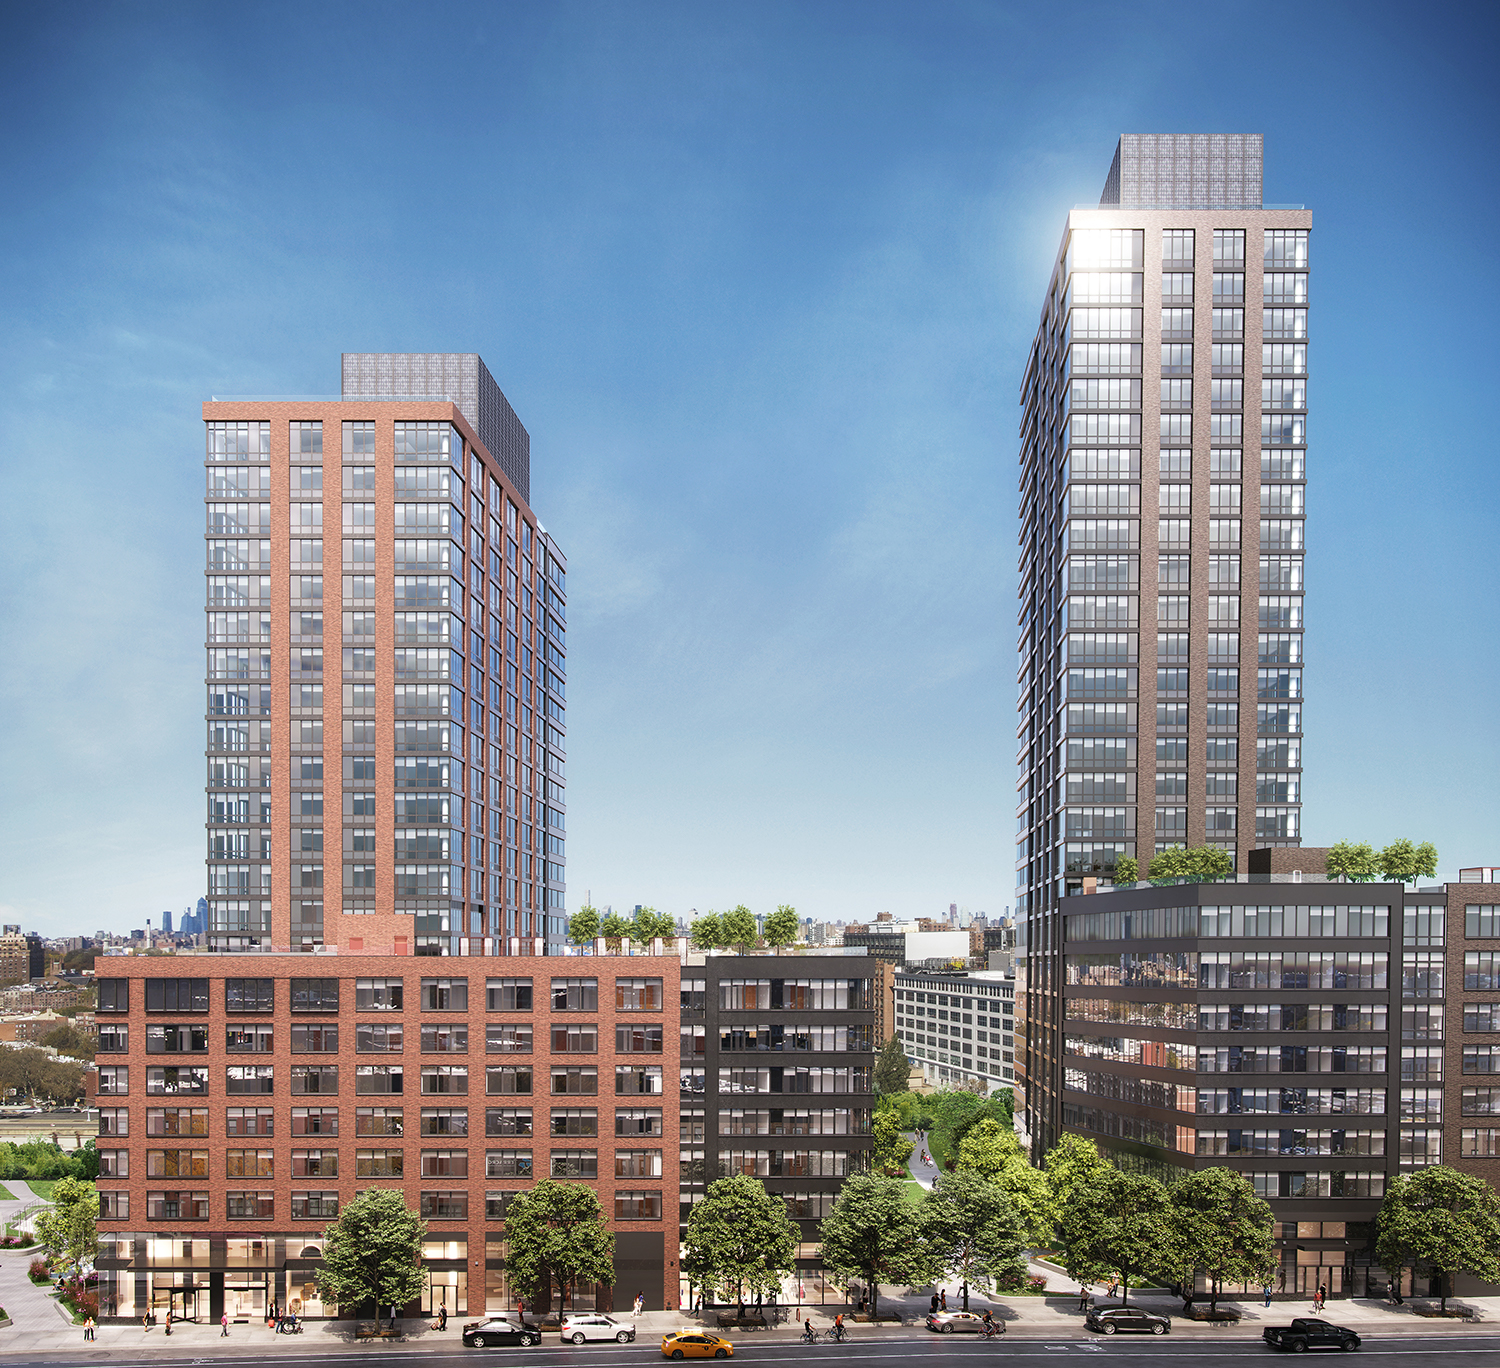 Rendering of 615 and 595 Dean Street. Credit: MOSO Studio